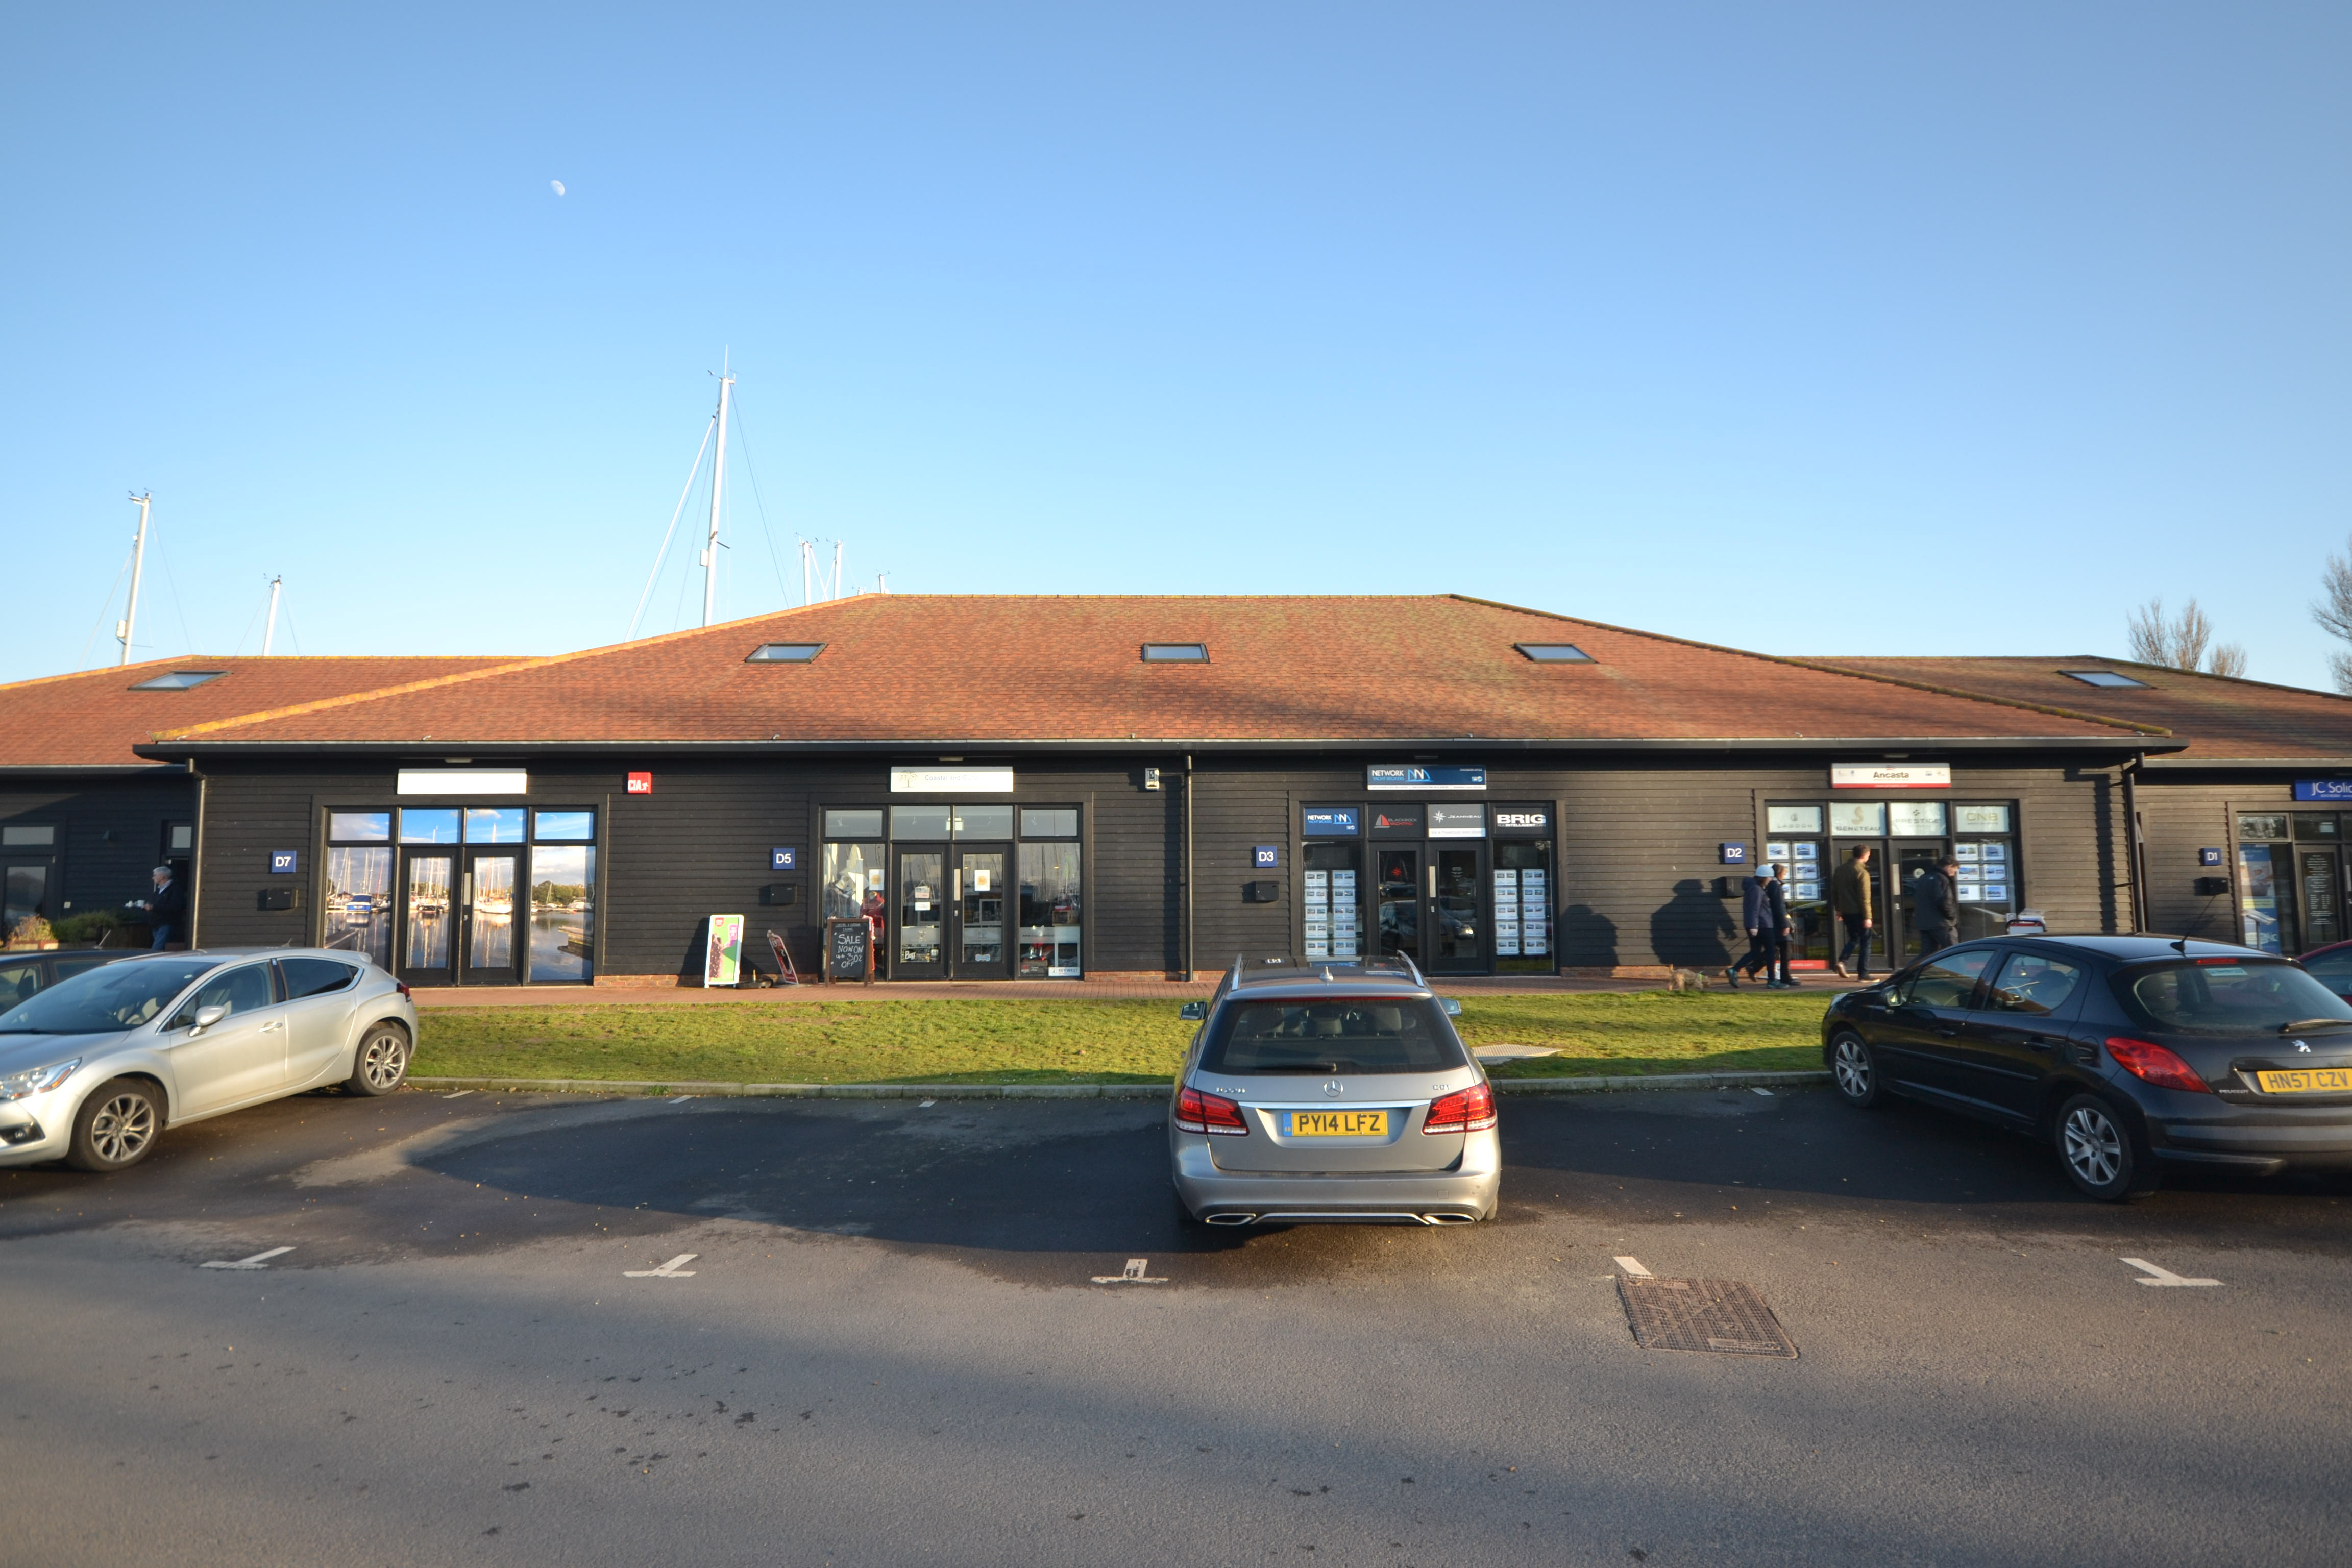 0 bed Industrial Park for rent in Chichester. From Henry Adams Commercial